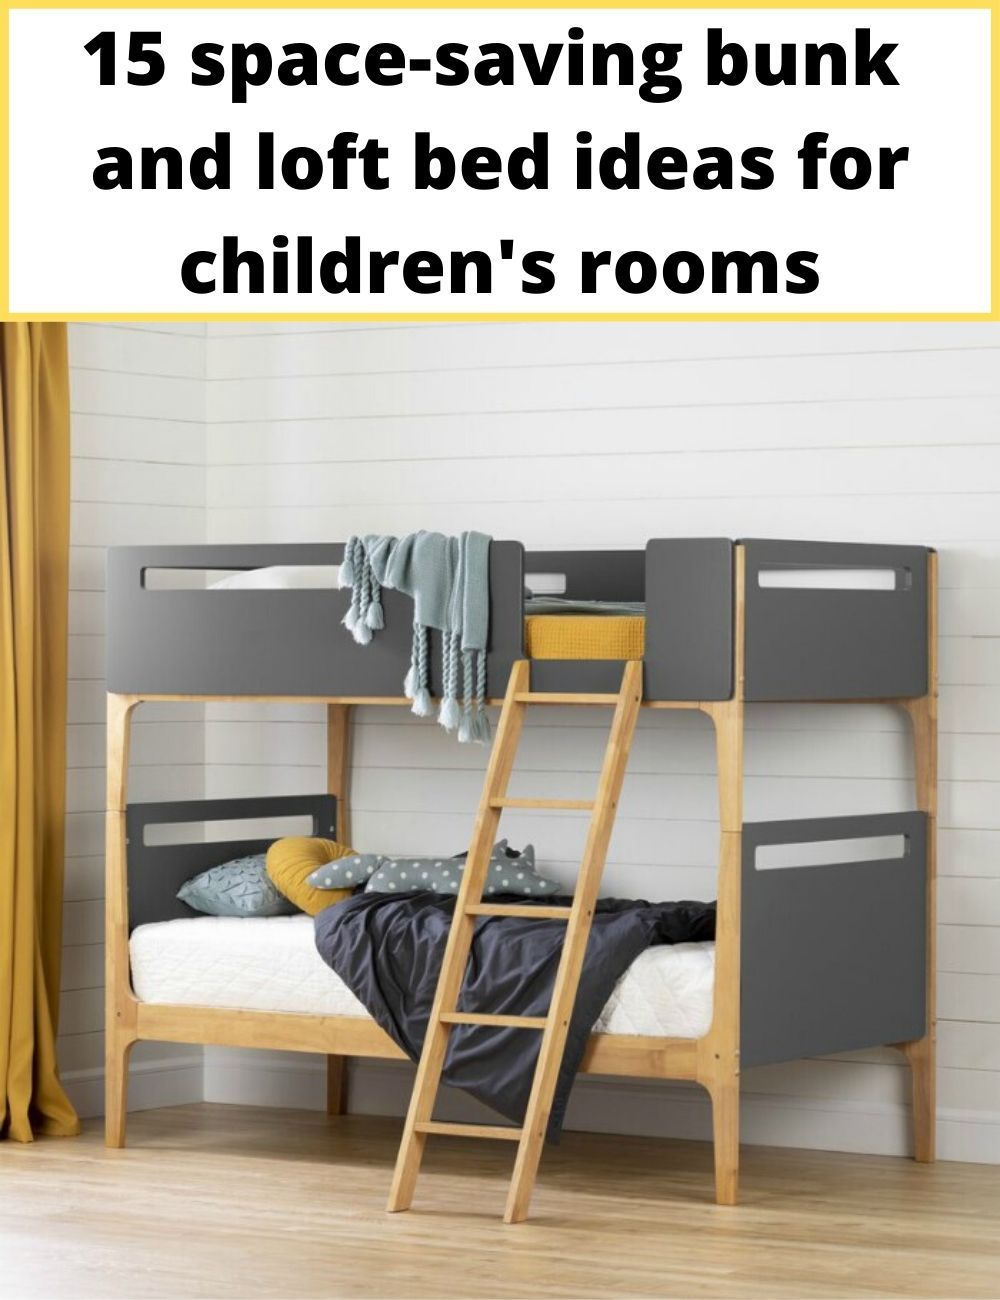 15 Space Saving Bunk And Loft Bed Ideas For Children S Rooms Modern Bunk Beds Bunk Beds Twin Bunk Beds